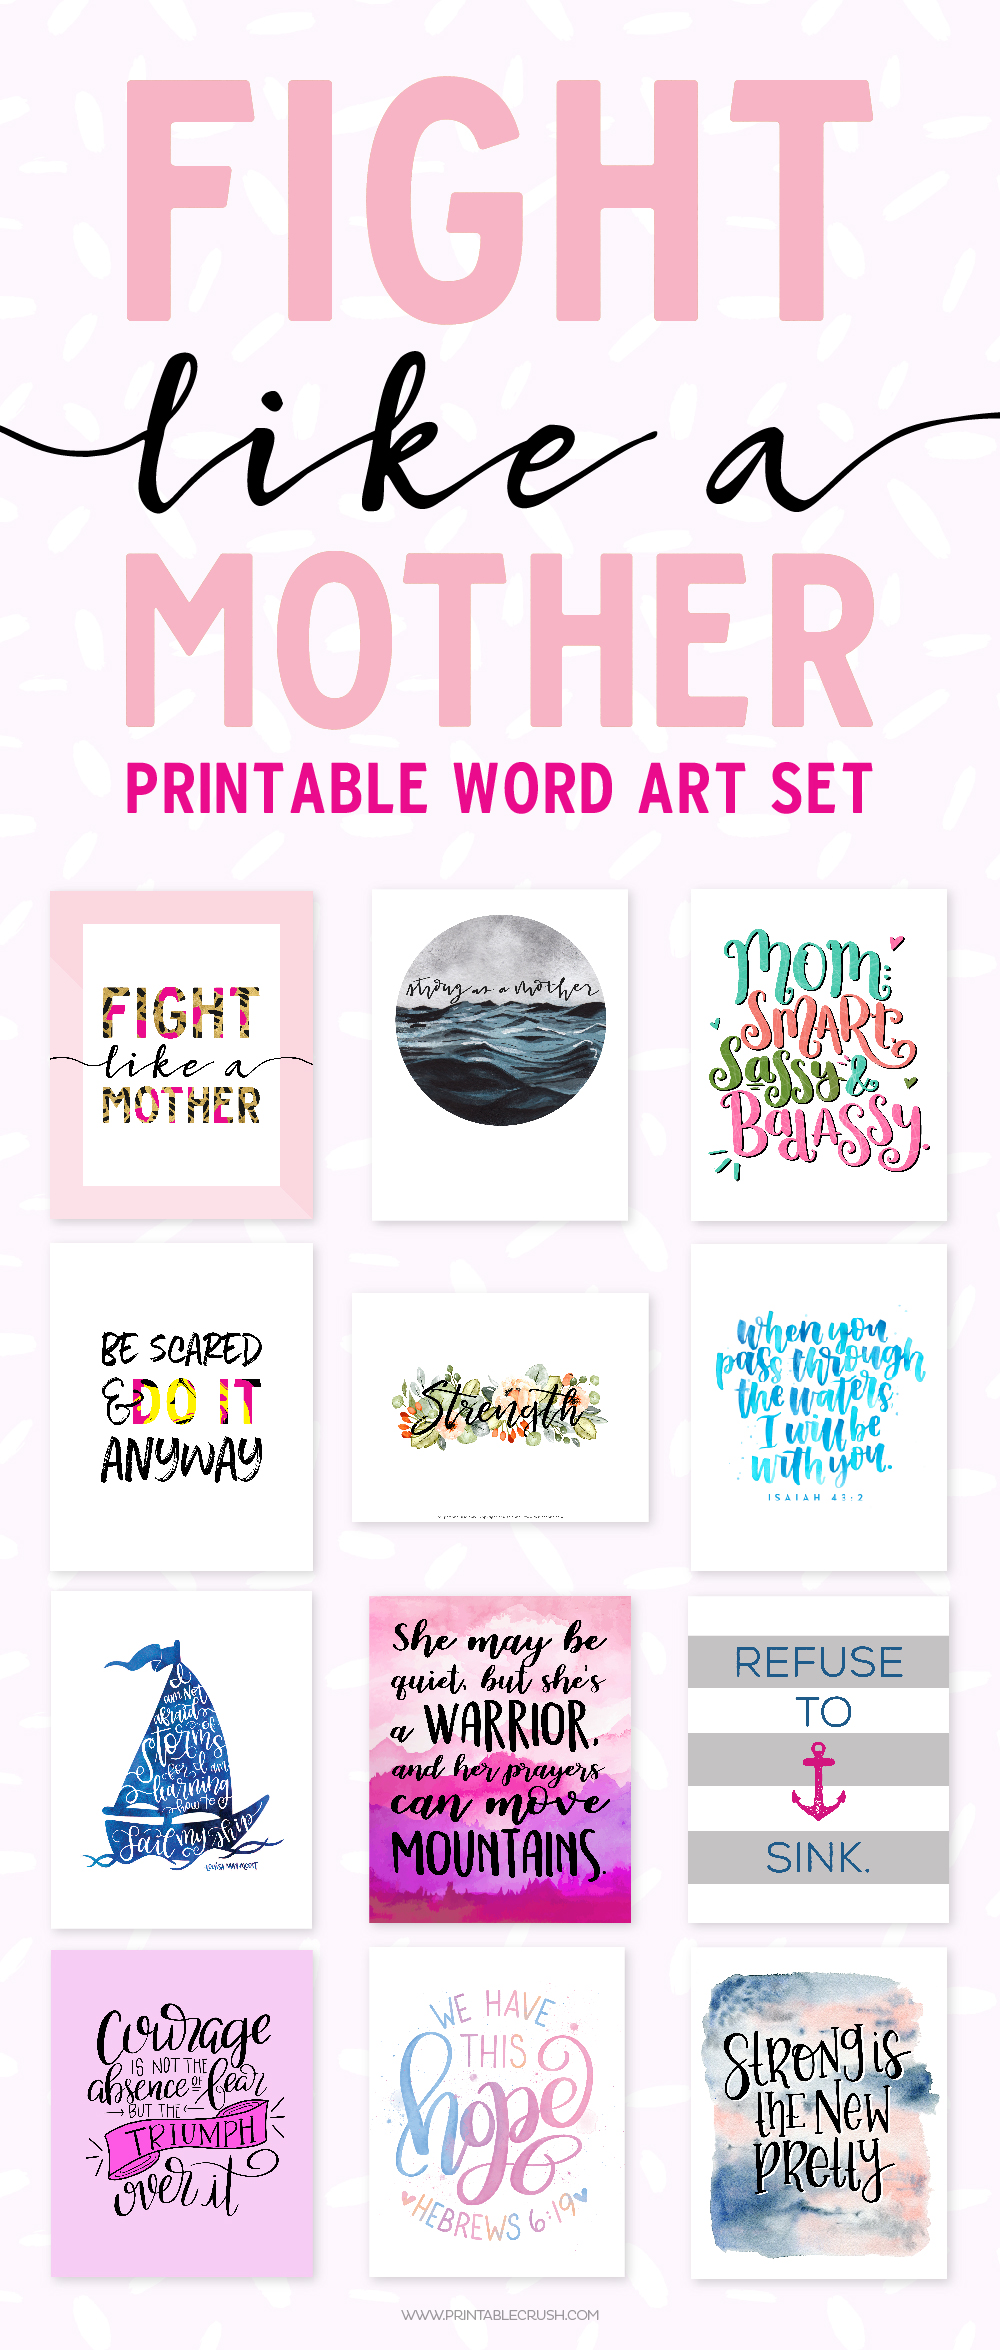 Get this Fight Like a Mother Printable Word Art Set as a gift for the strong women in your life and choose your donation amount to help a family in need. via @printablecrush